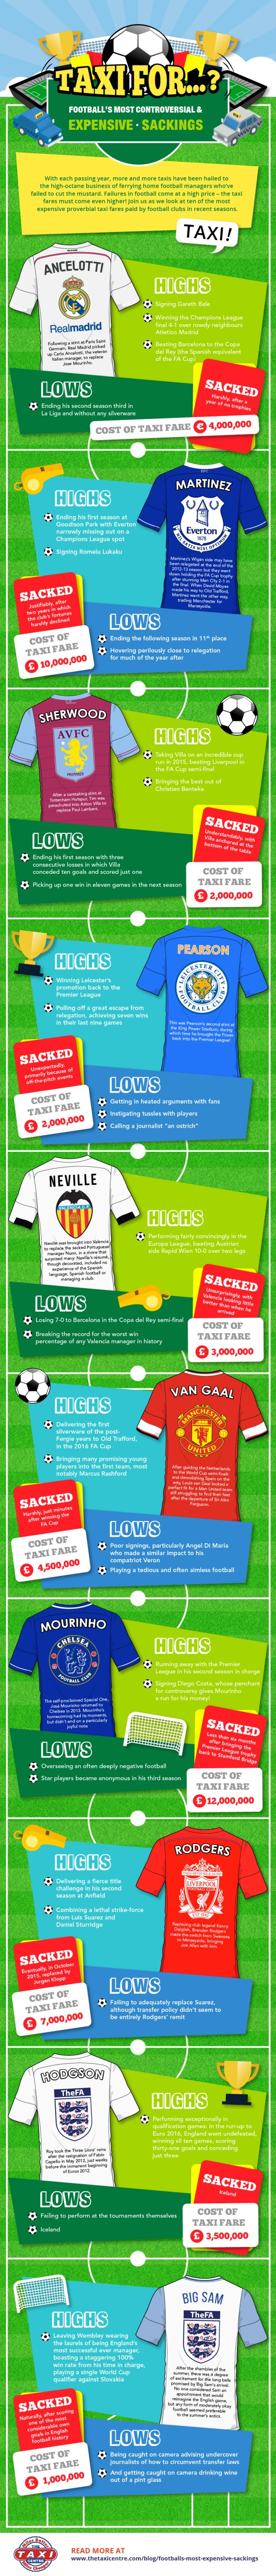 Football-Infographic-image